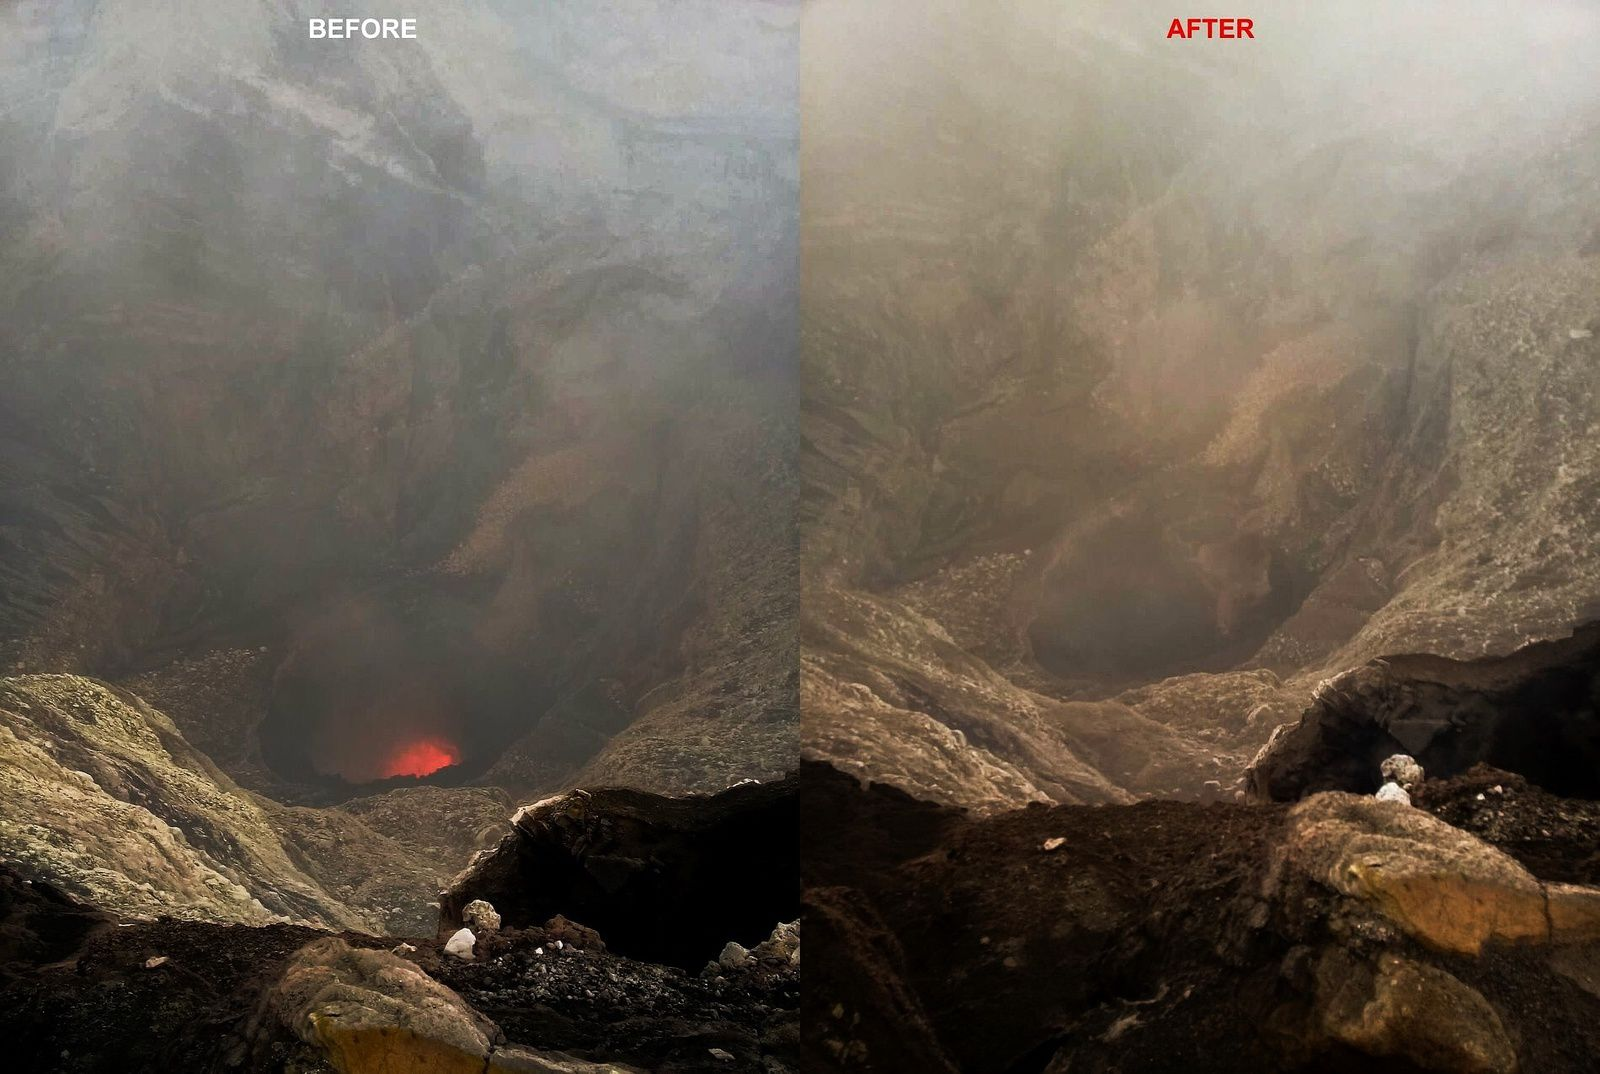 Ambrym - disappearance of the lava lake in the Marum crater following the intracaldical fissure eruption - photo John Tasso 17.12.2018